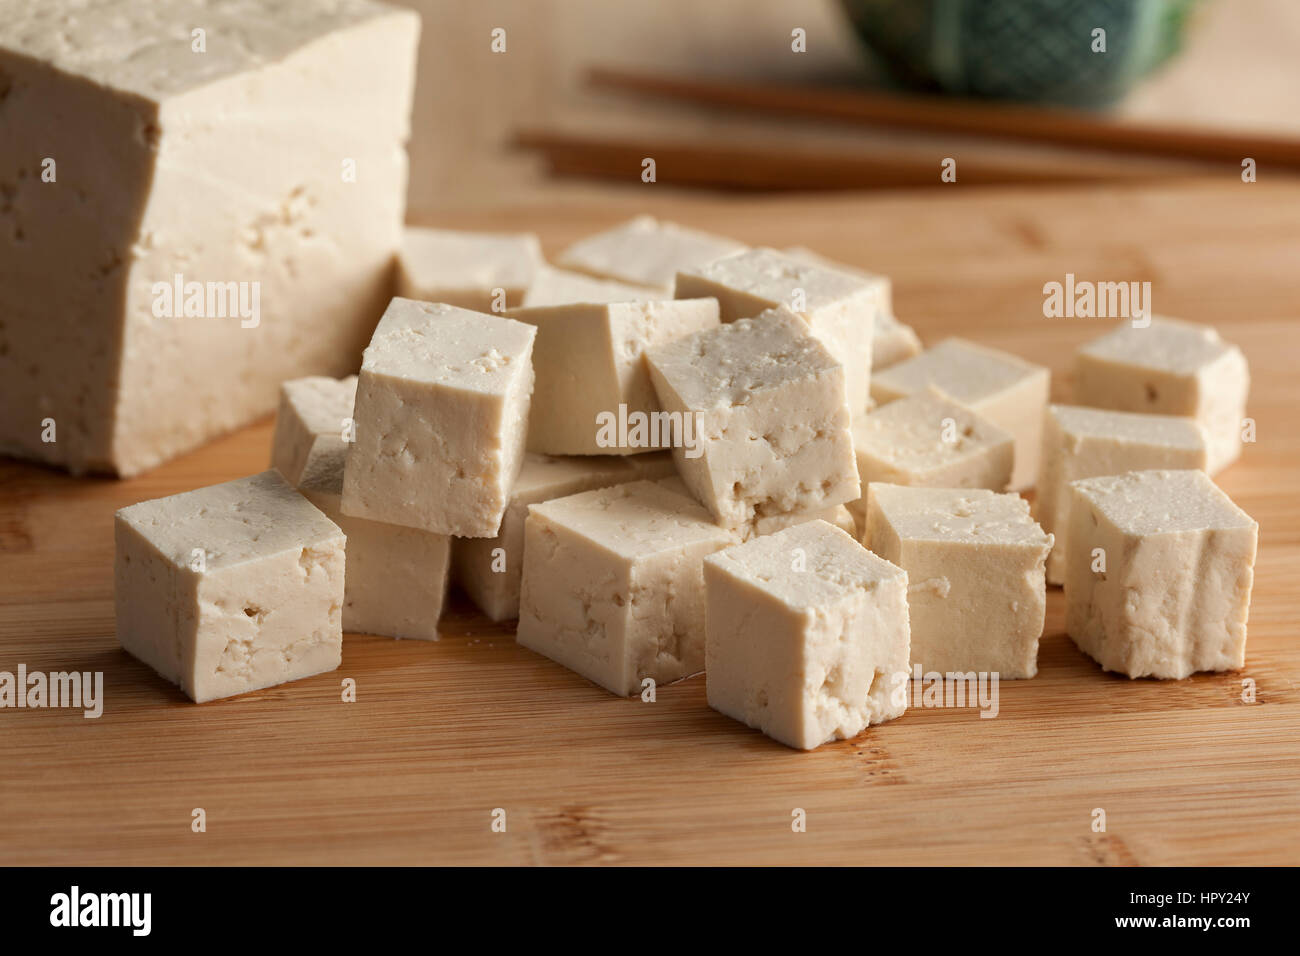 Fresh cut pieces of raw tofu - Stock Image